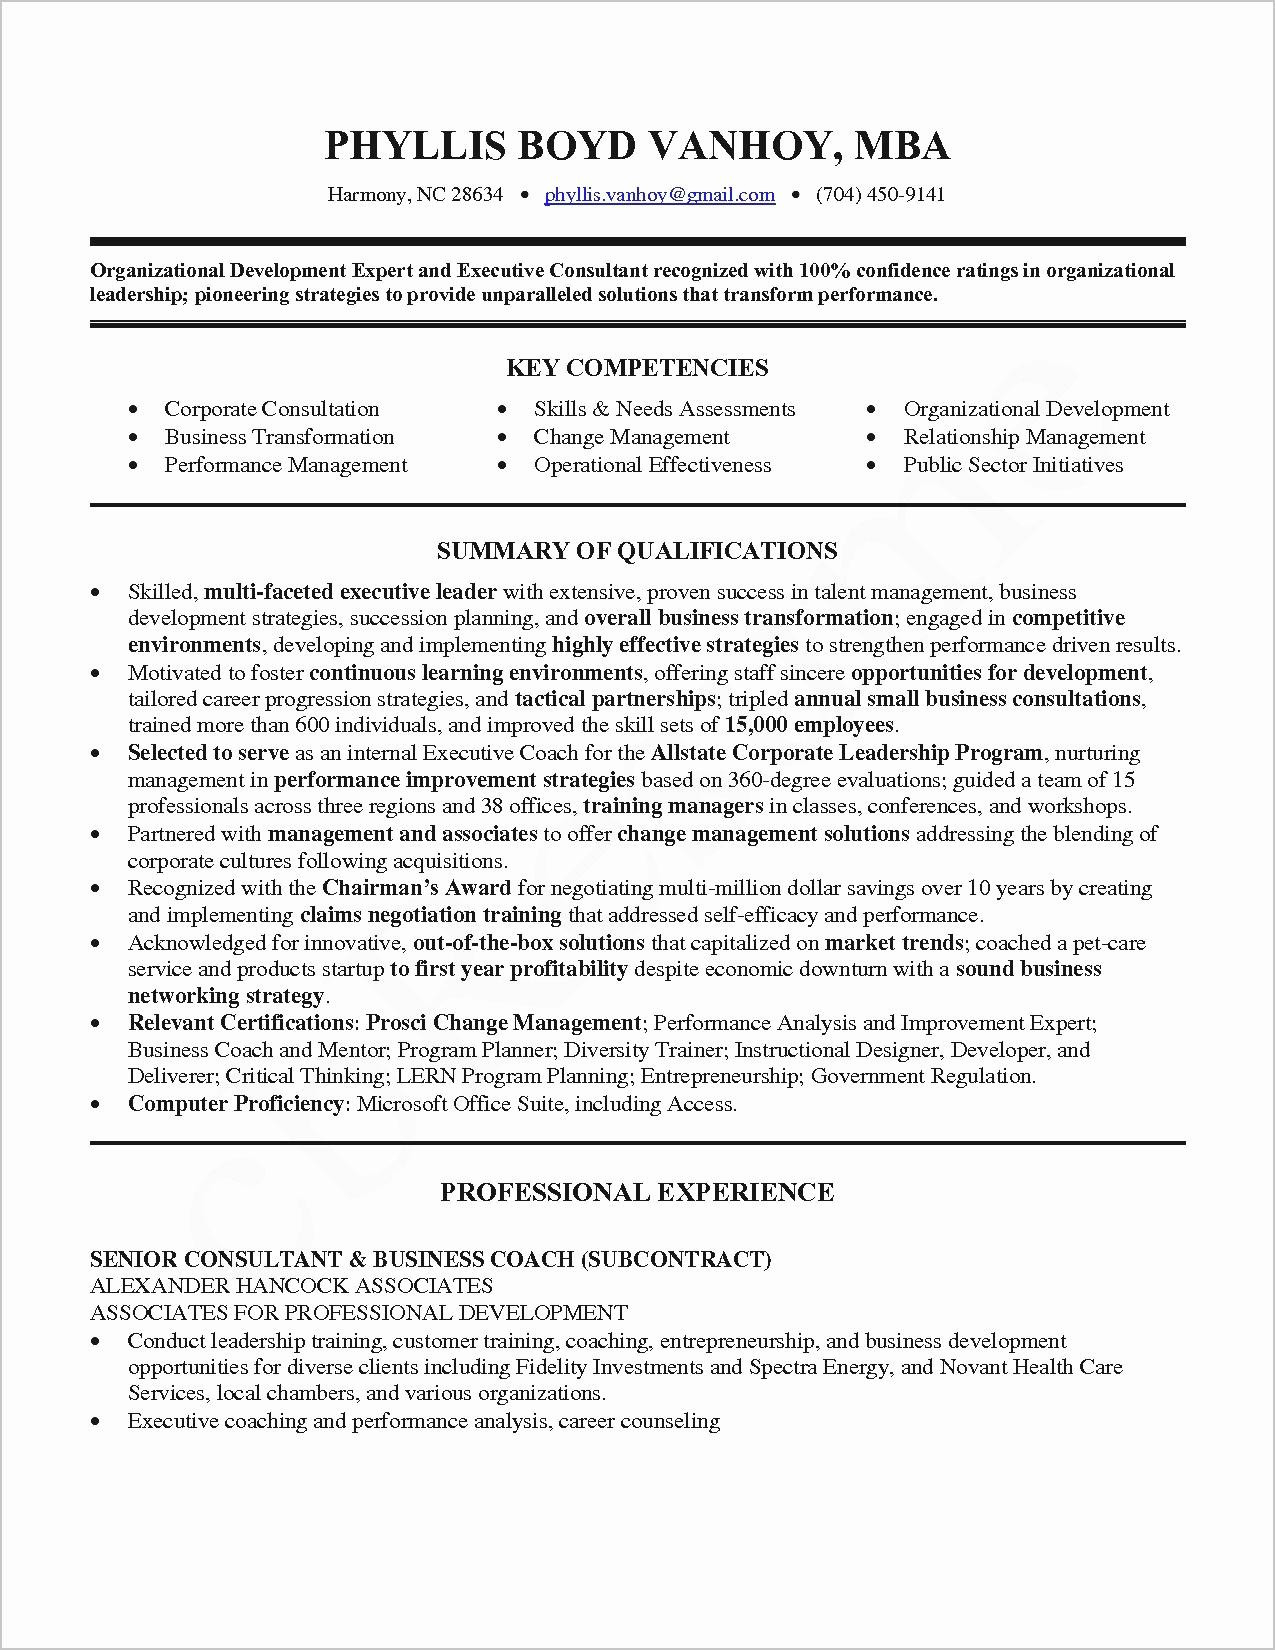 Professional Resume Layout - How to Write A Great Unique Professional Resume Layout Pdf Template